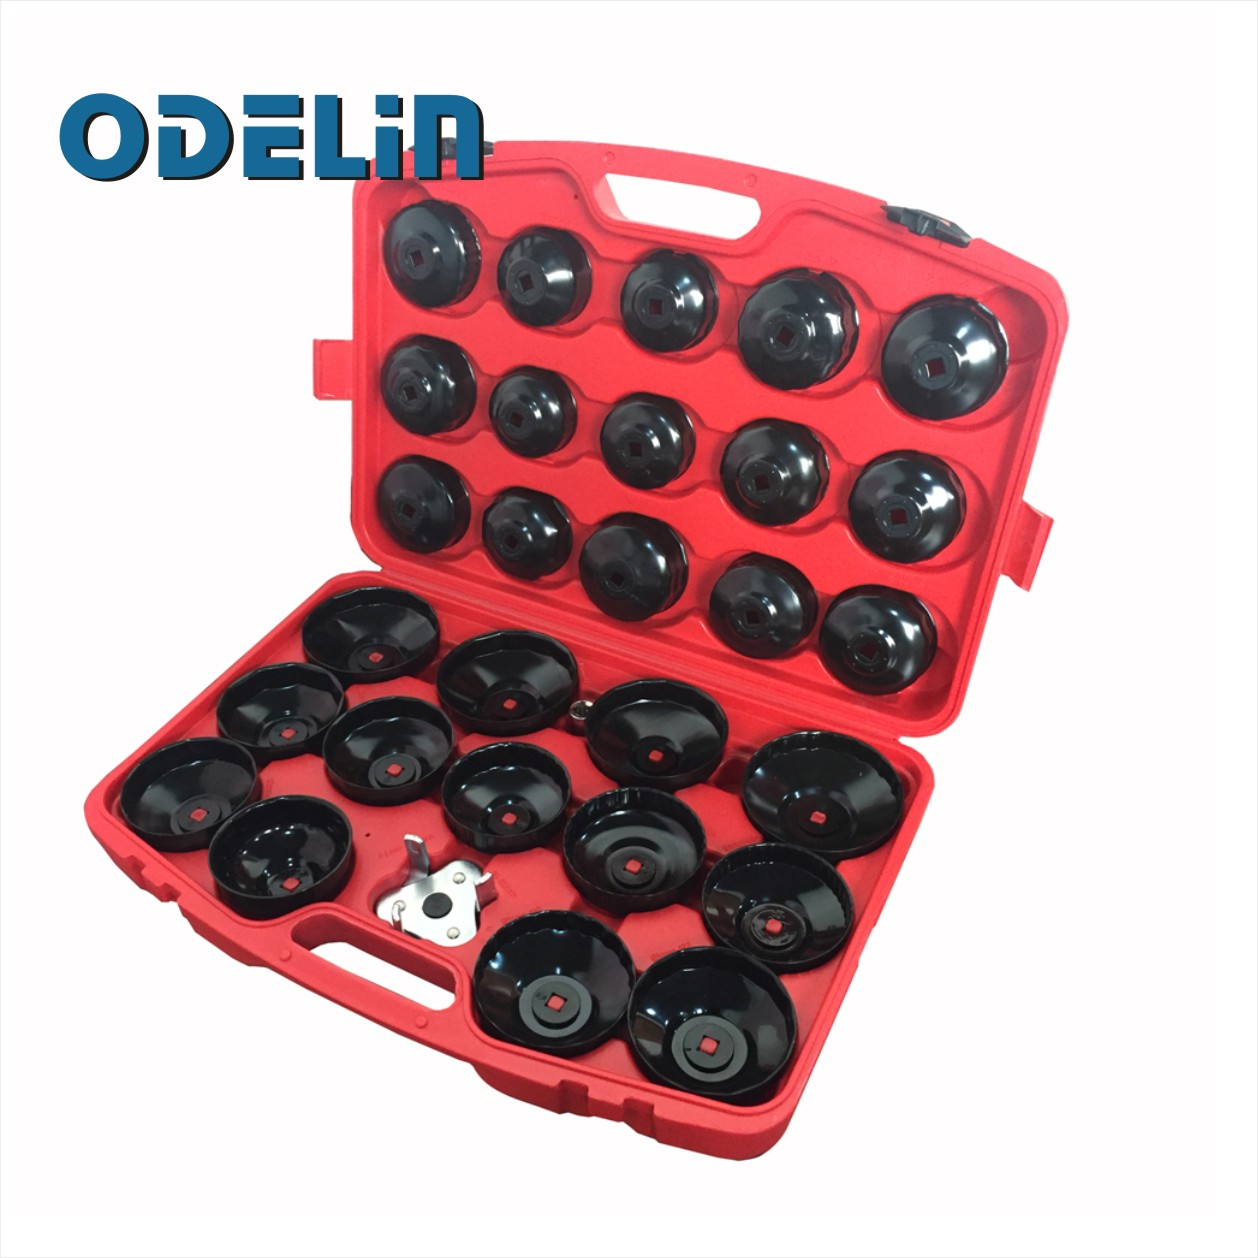 30pc Oil Filter Removal Wrench Cap Car Garage Tool Set Loosen Tighten Cup Socket 20pcs m3 m12 screw thread metric plugs taps tap wrench die wrench set